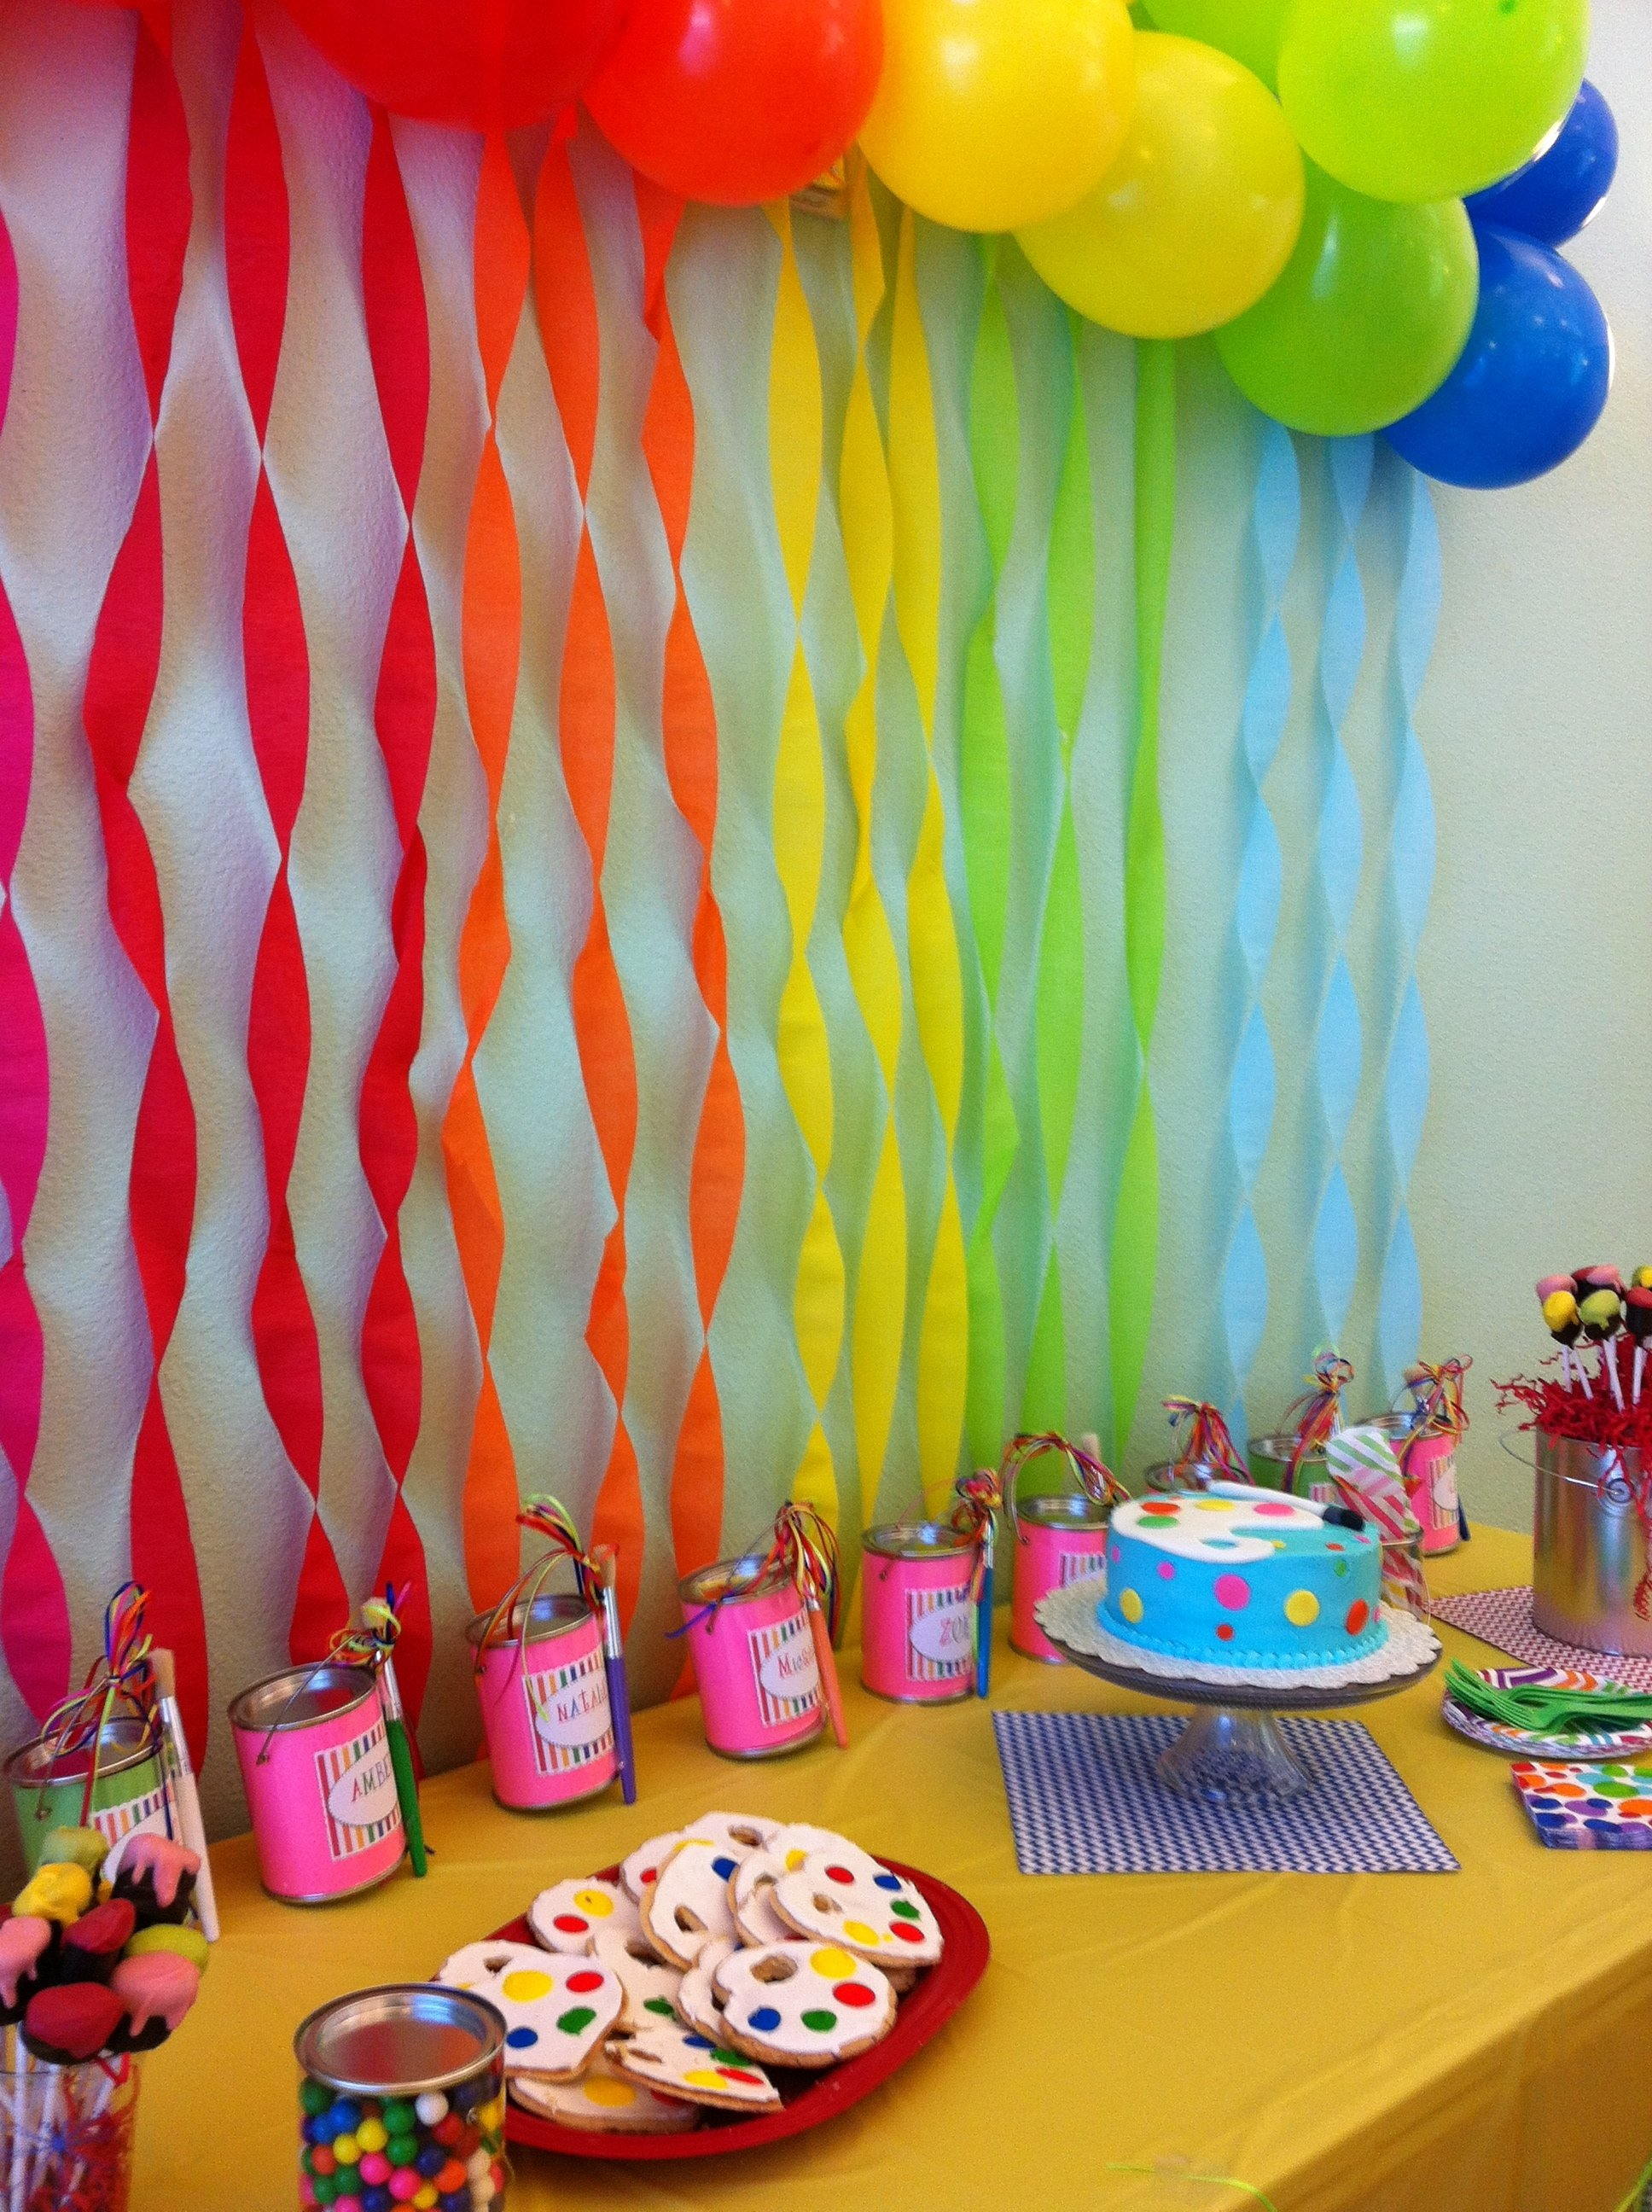 10 Fantastic Birthday Party Ideas For Girls 8 year old girl birthday art party art party pinterest art 34 2020